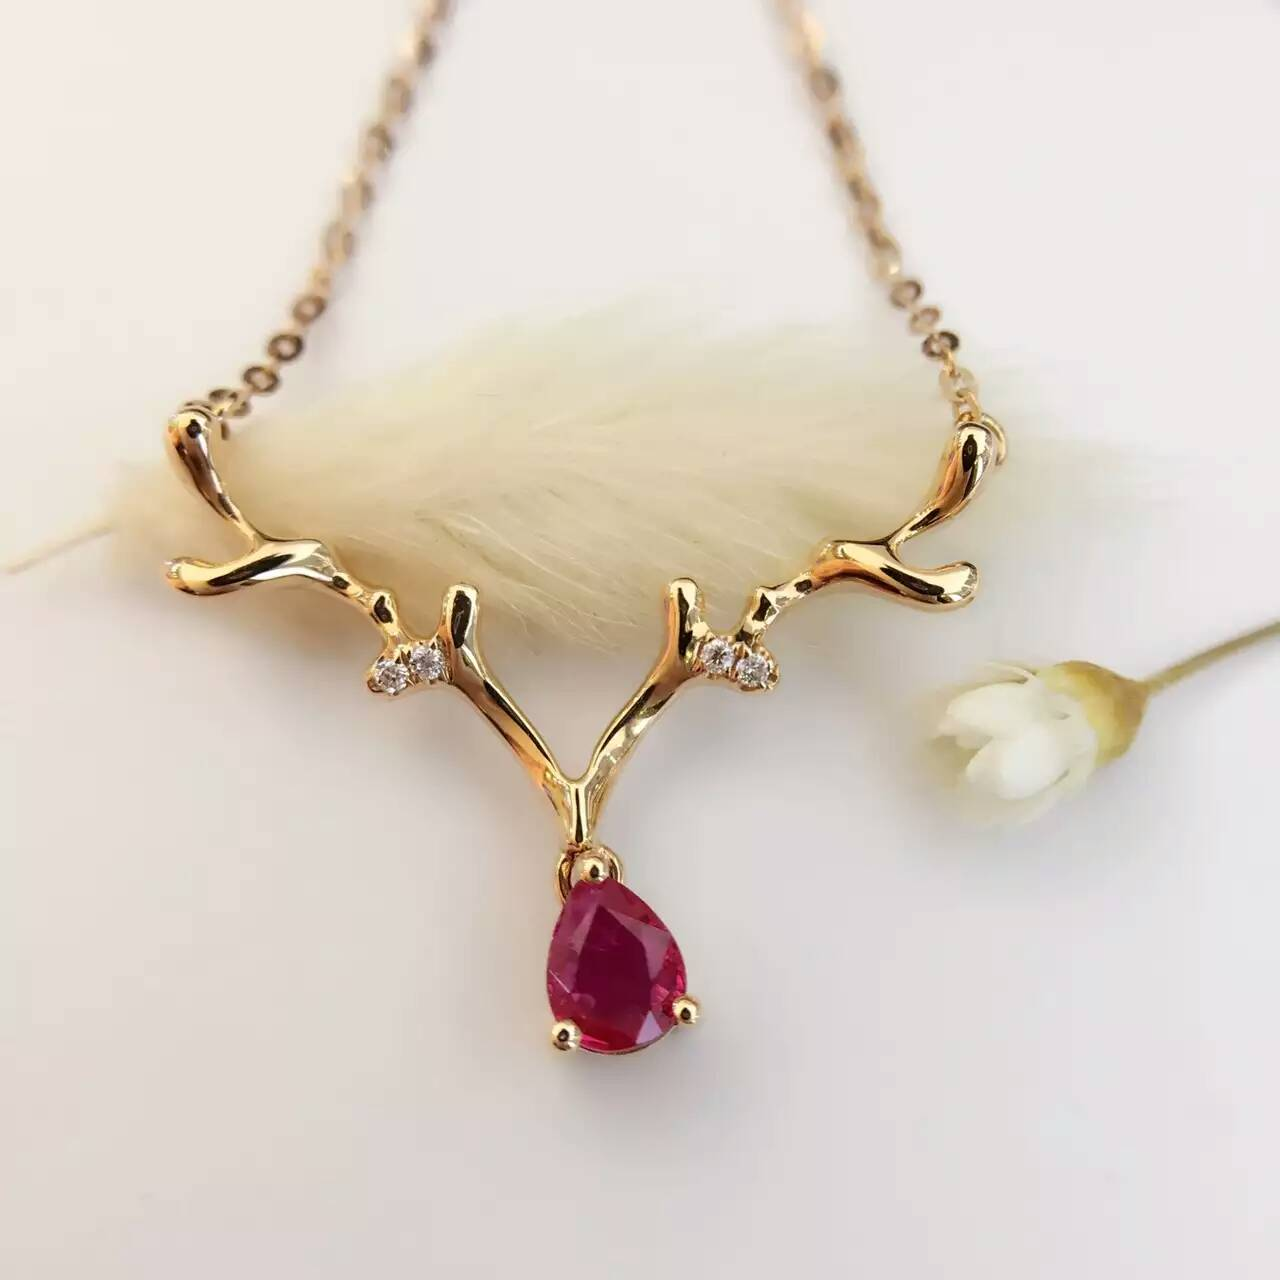 0 245ct 0 017ct 18K Gold Natural Ruby and Pendant font b Necklace b font font